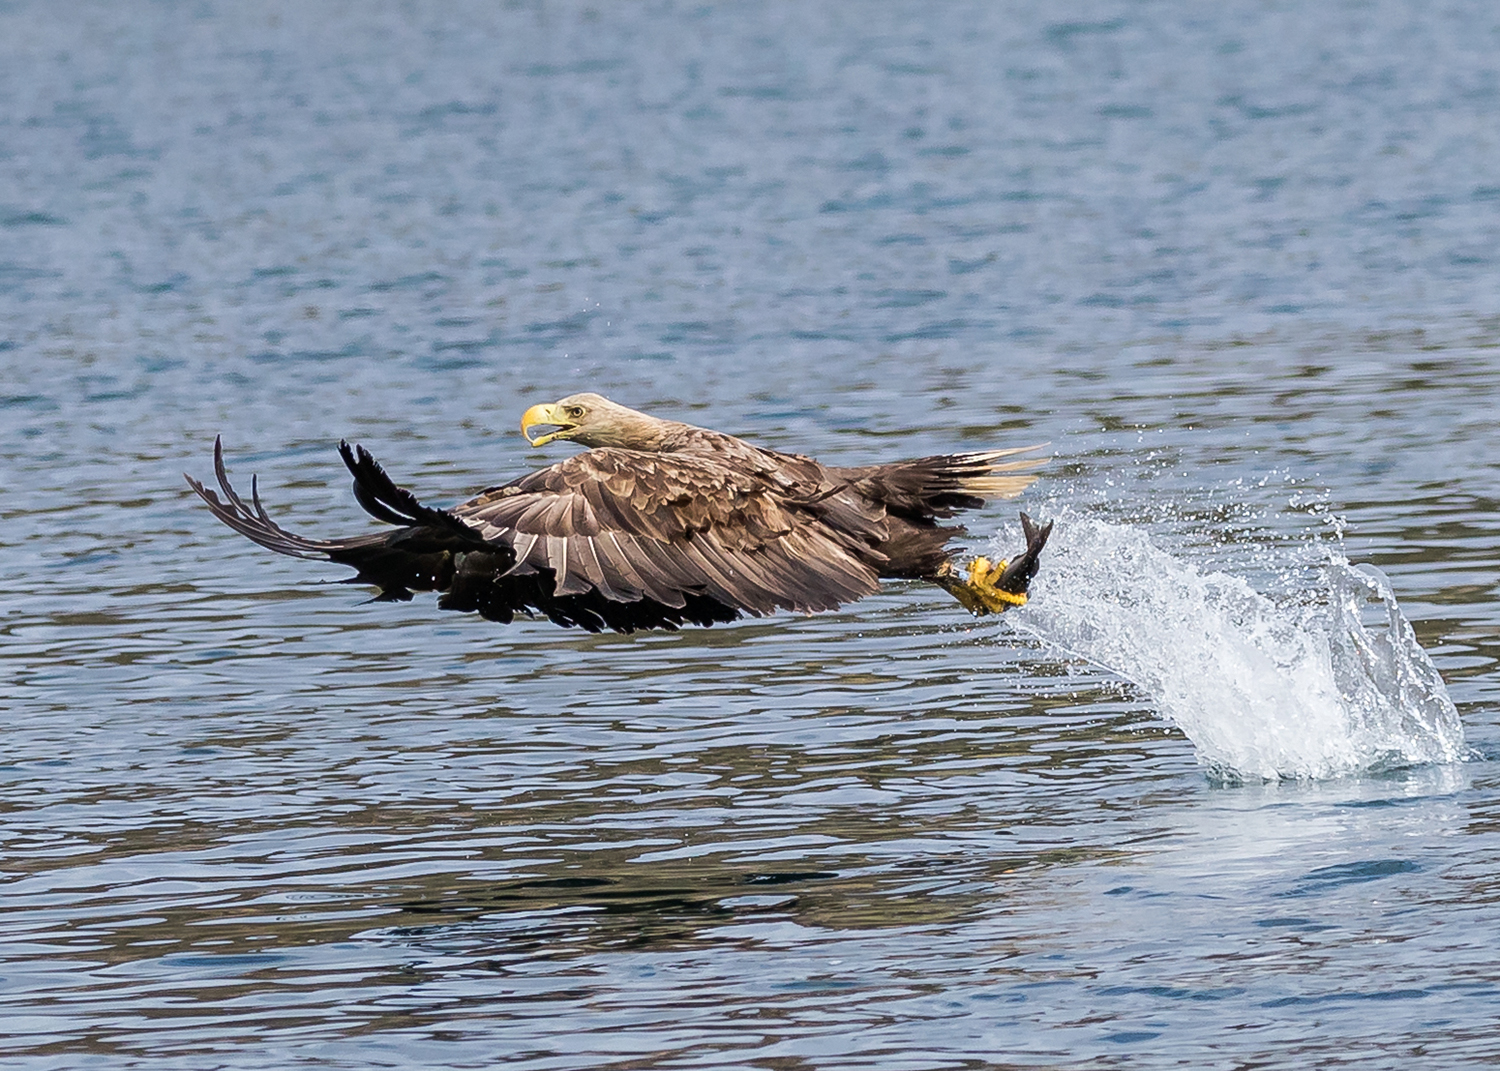 White Tailed Eagle catching a fish